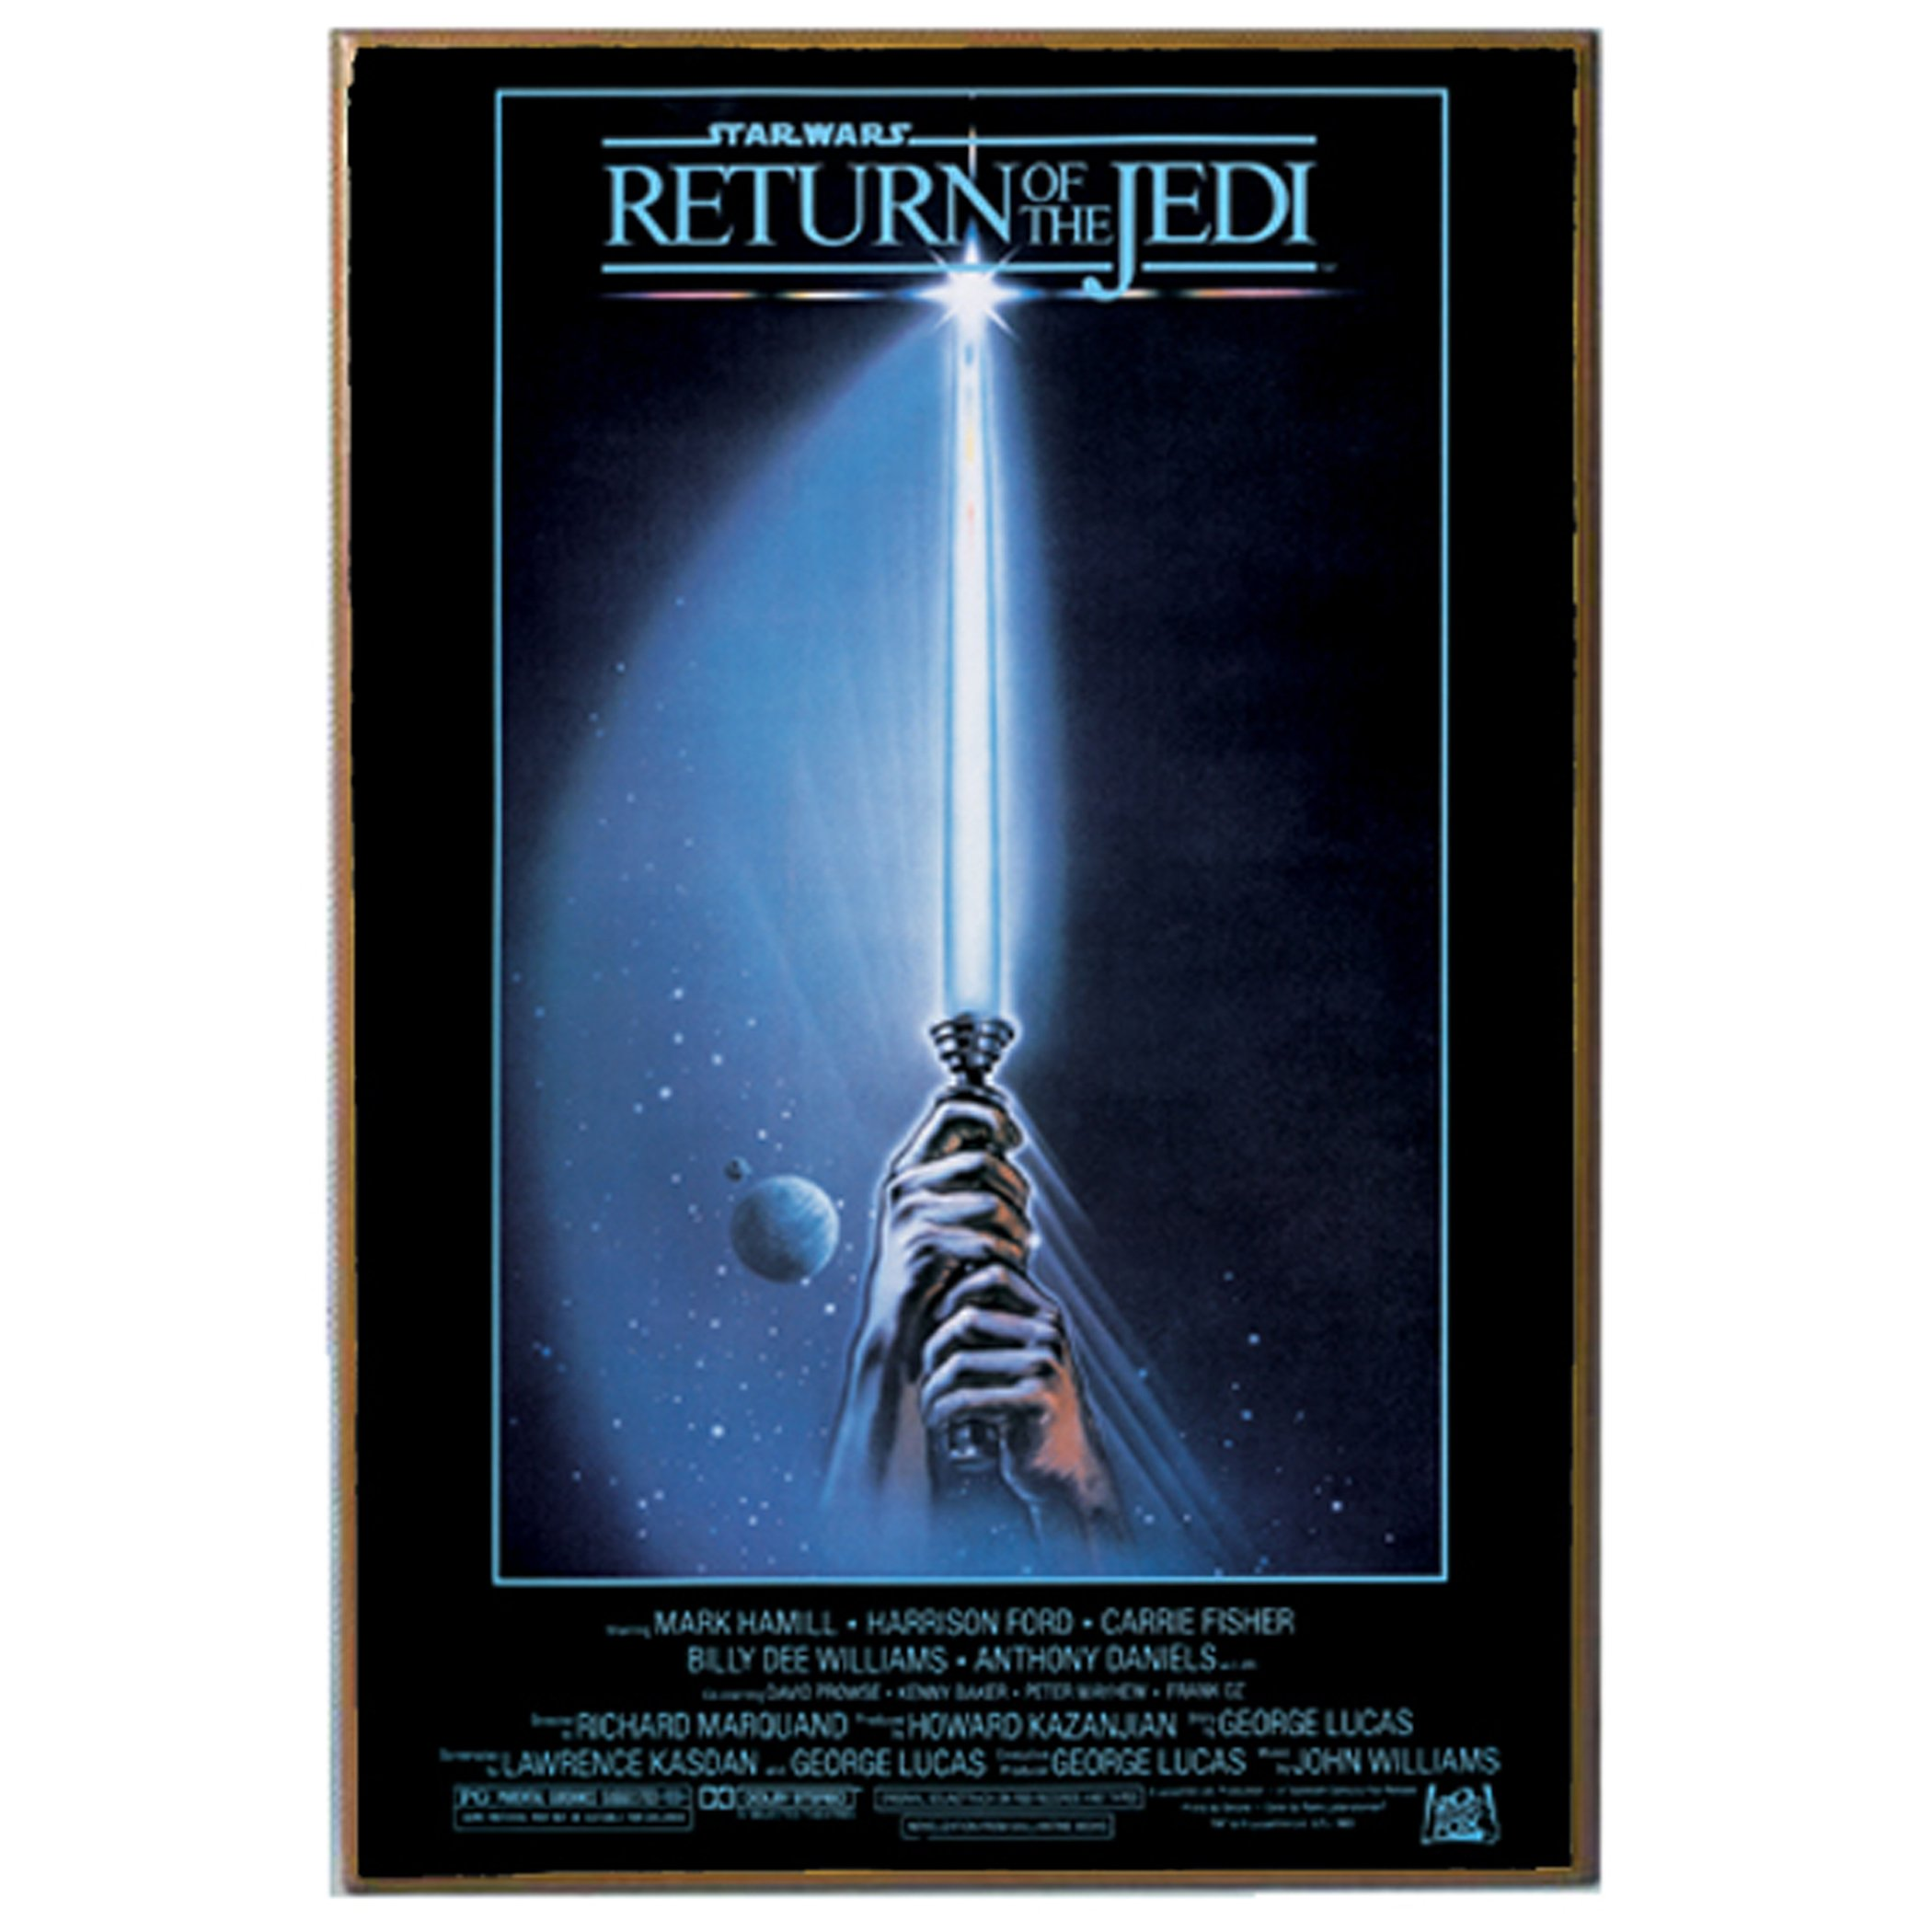 Star Wars Silver Buffalo SW6336 Return of The Jedi Movie Poster Wood Art Wall Plaque, 13 x 19 inches